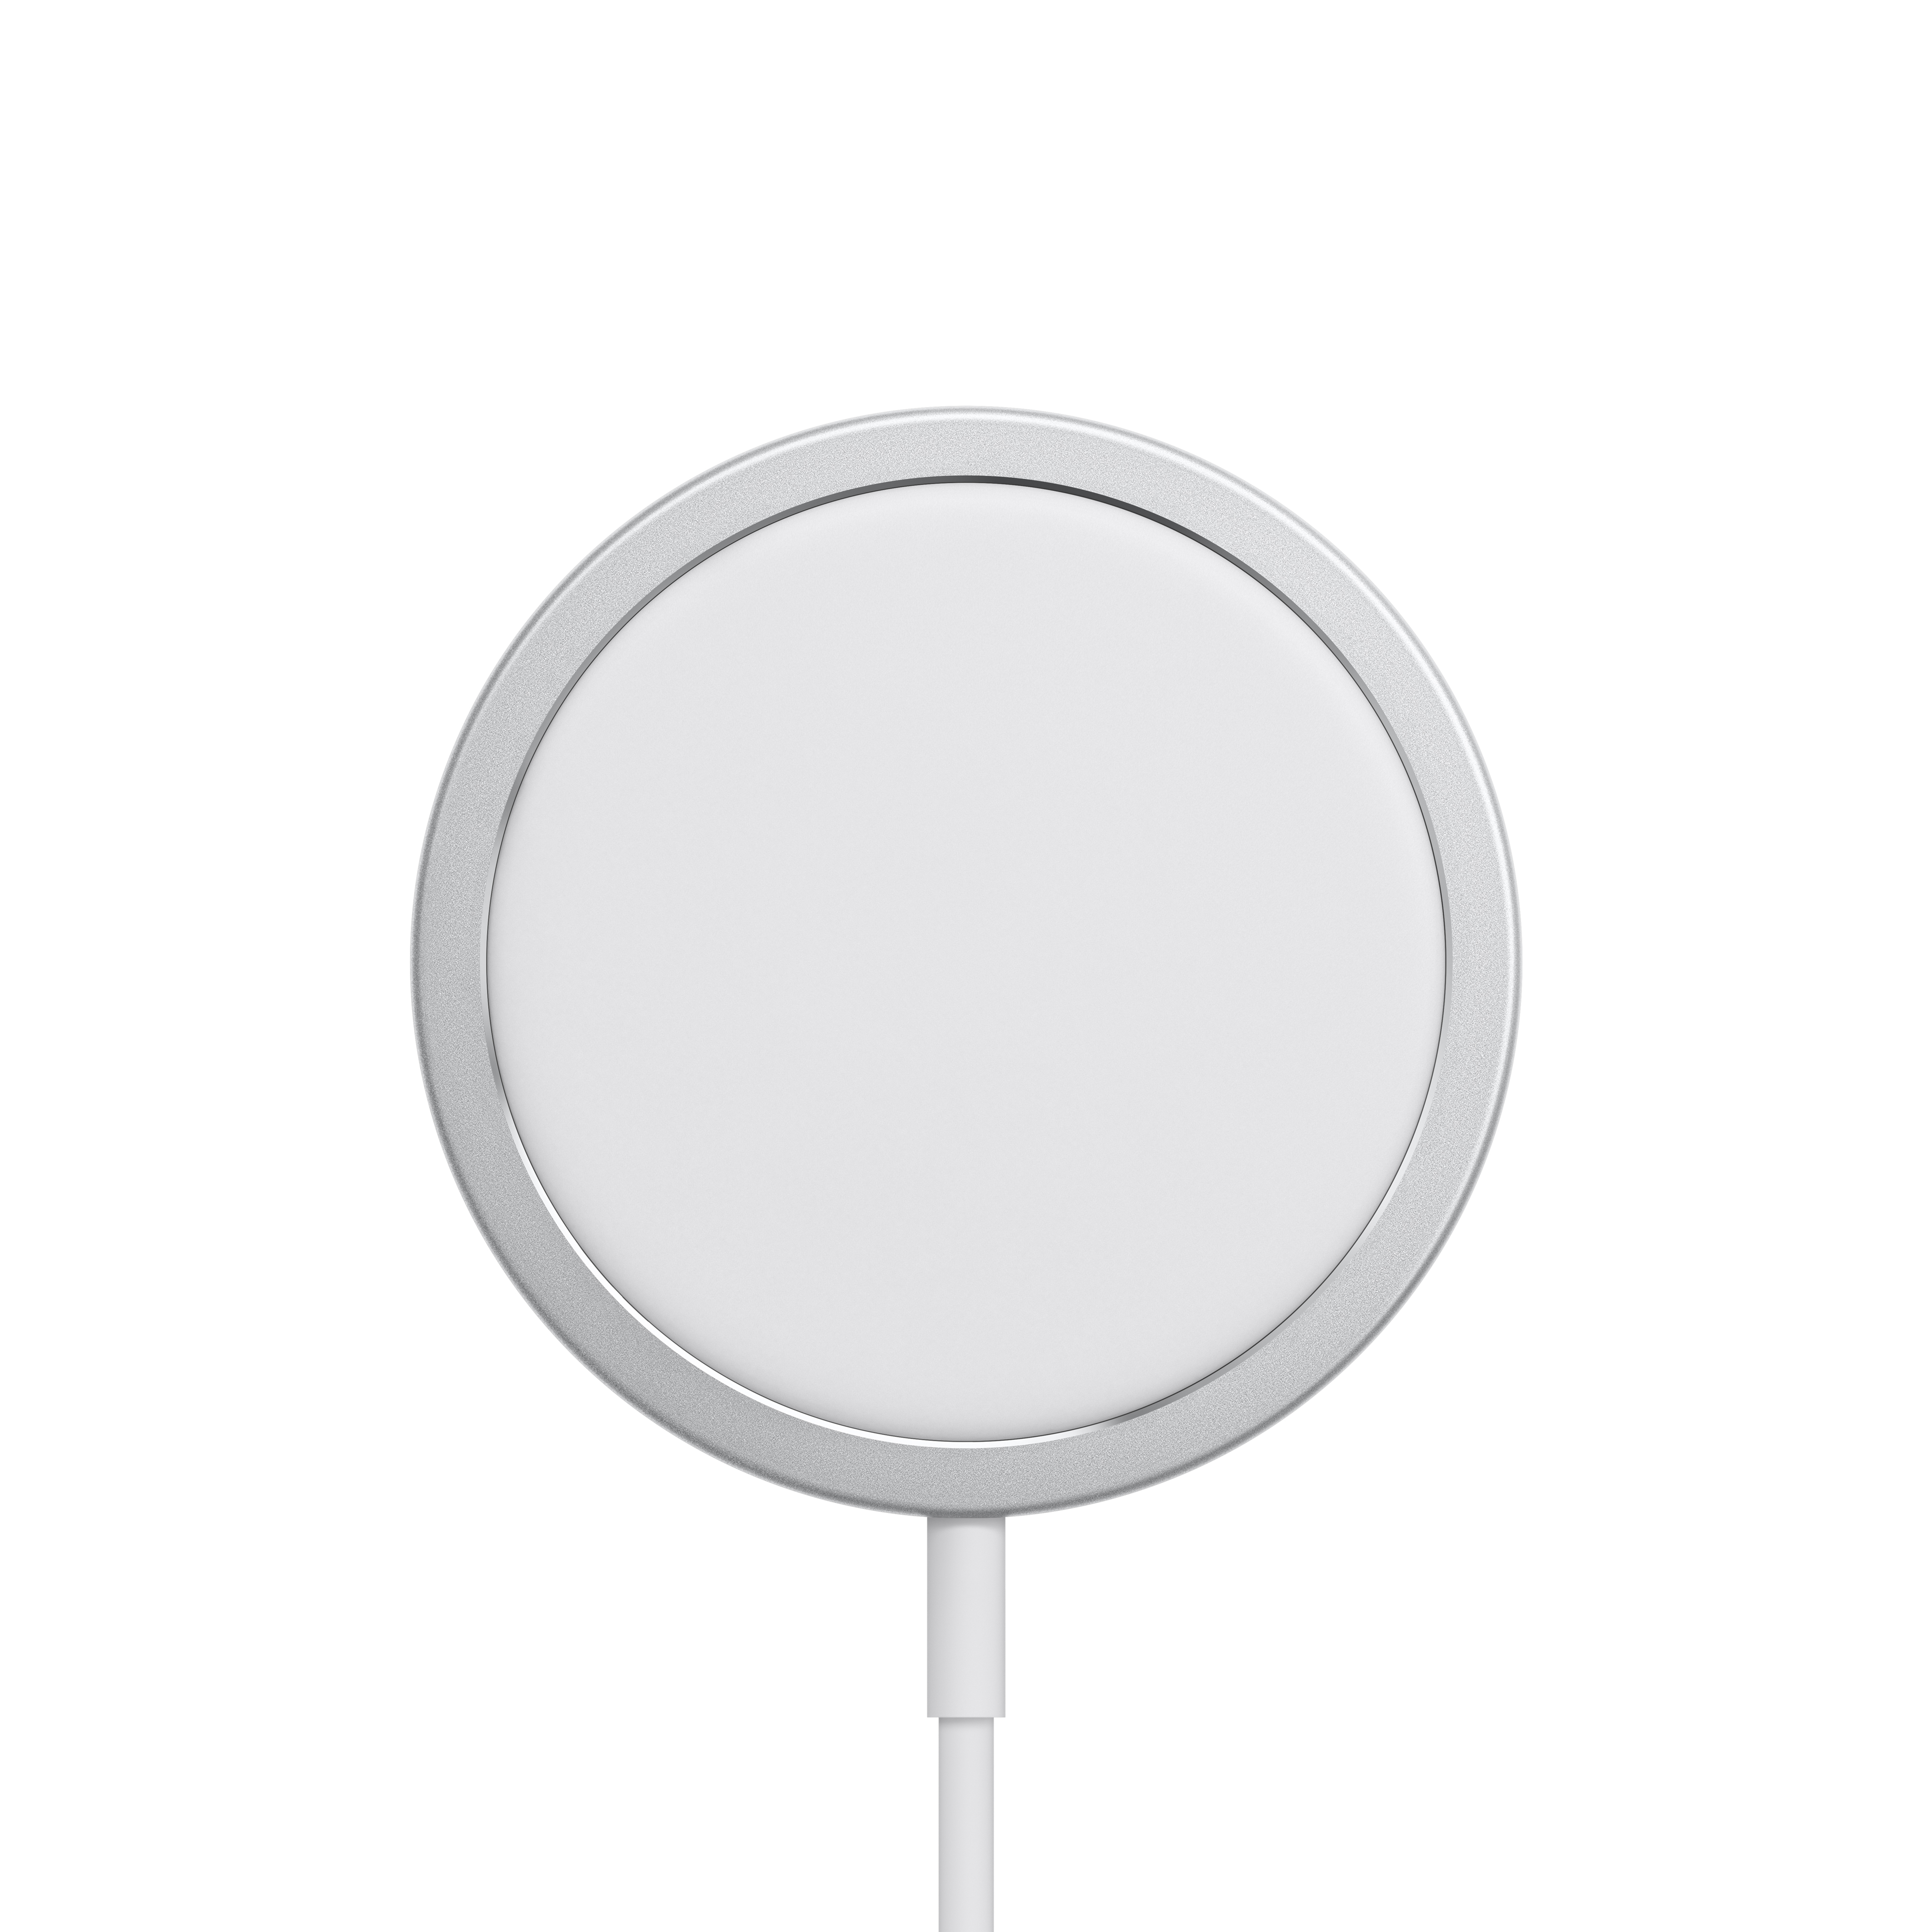 magsafe_charger_pdp_image_position-2.jpg